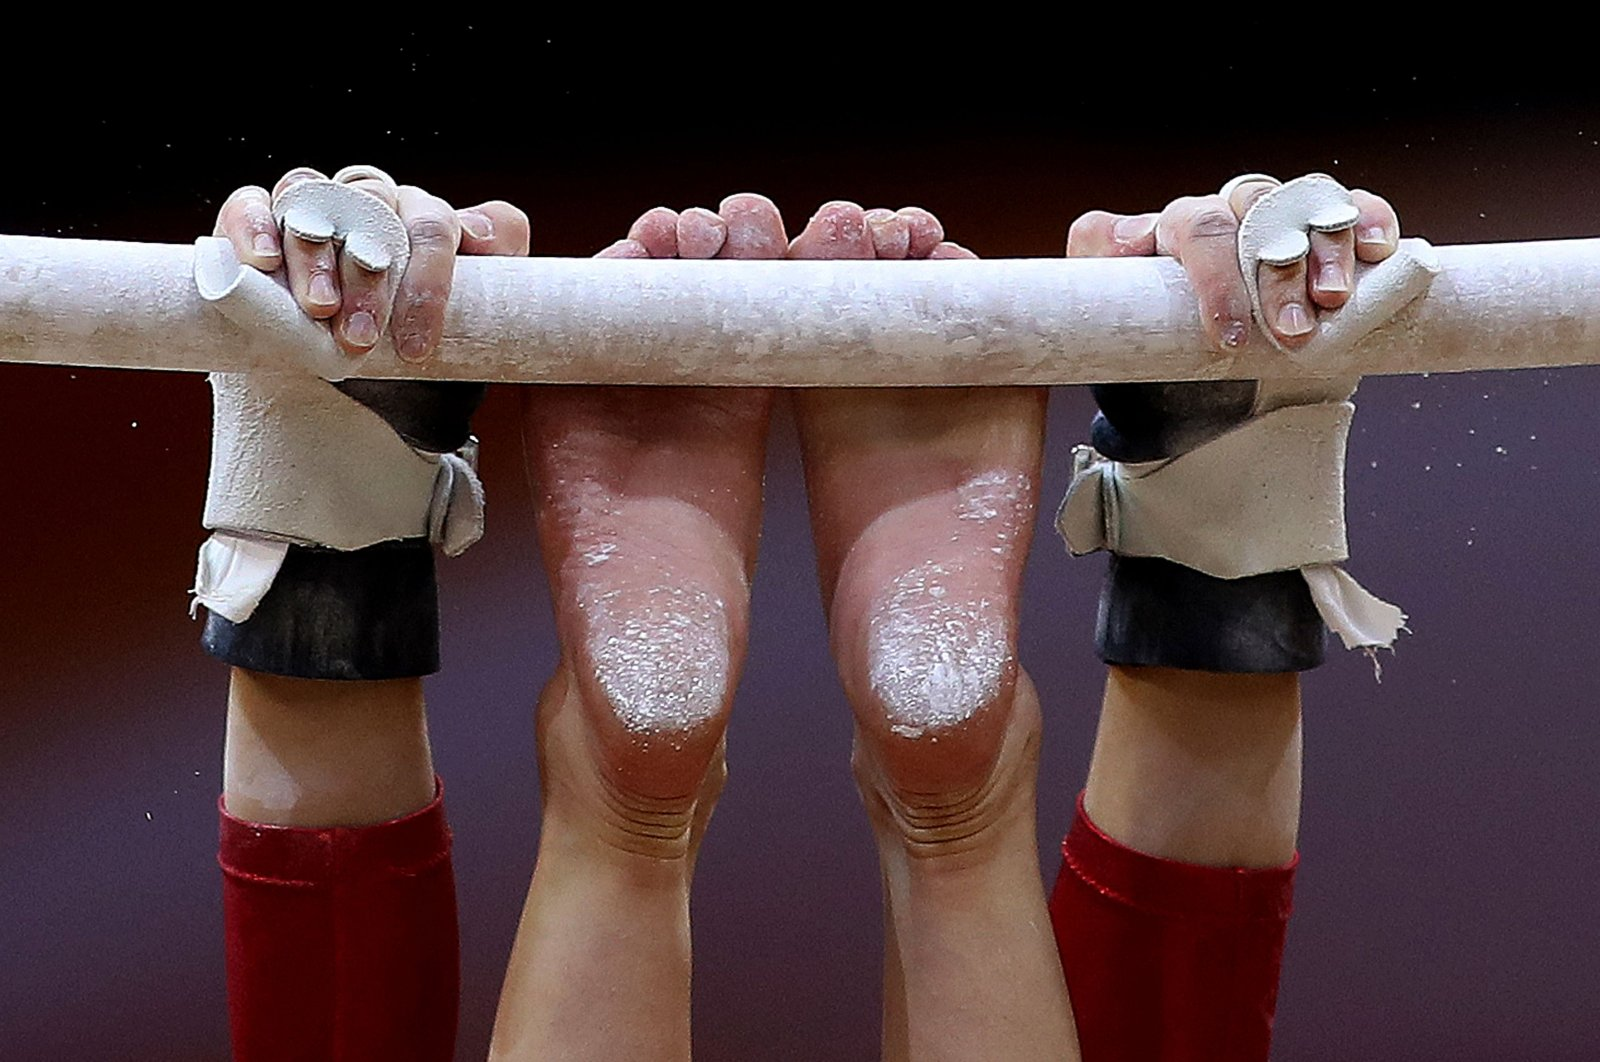 Brooklyn Moors of Canada competes in the uneven bars during the women's team final of the 2018 FIG Artistic Gymnastics Championships at Aspire Dome in Doha, Qatar, Oct. 30, 2018. (AFP Photo)